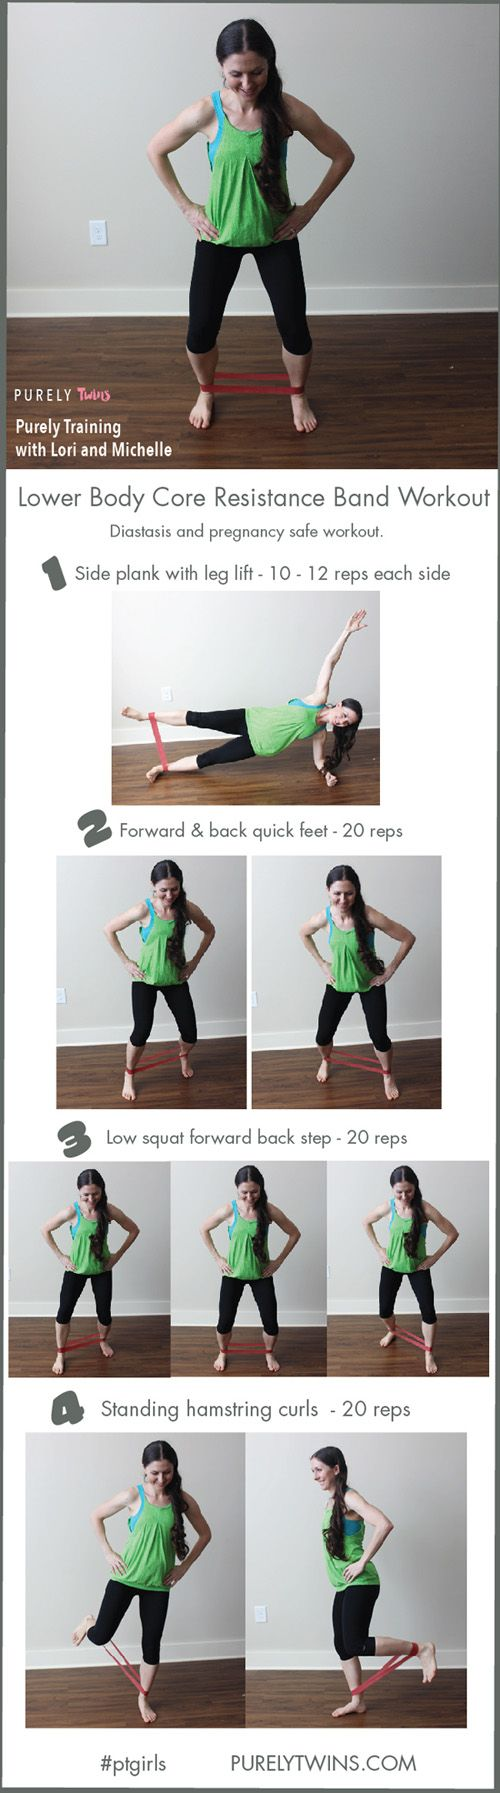 Resistance band workout to get a tight core and sexy legs for women and moms! Little space required. You don't need to lift super heavy to get a great leg workout in at home. Follow these 4 exercises to strengthen and tone your lower body and core. Share this workout with your friends and do this workout with me.